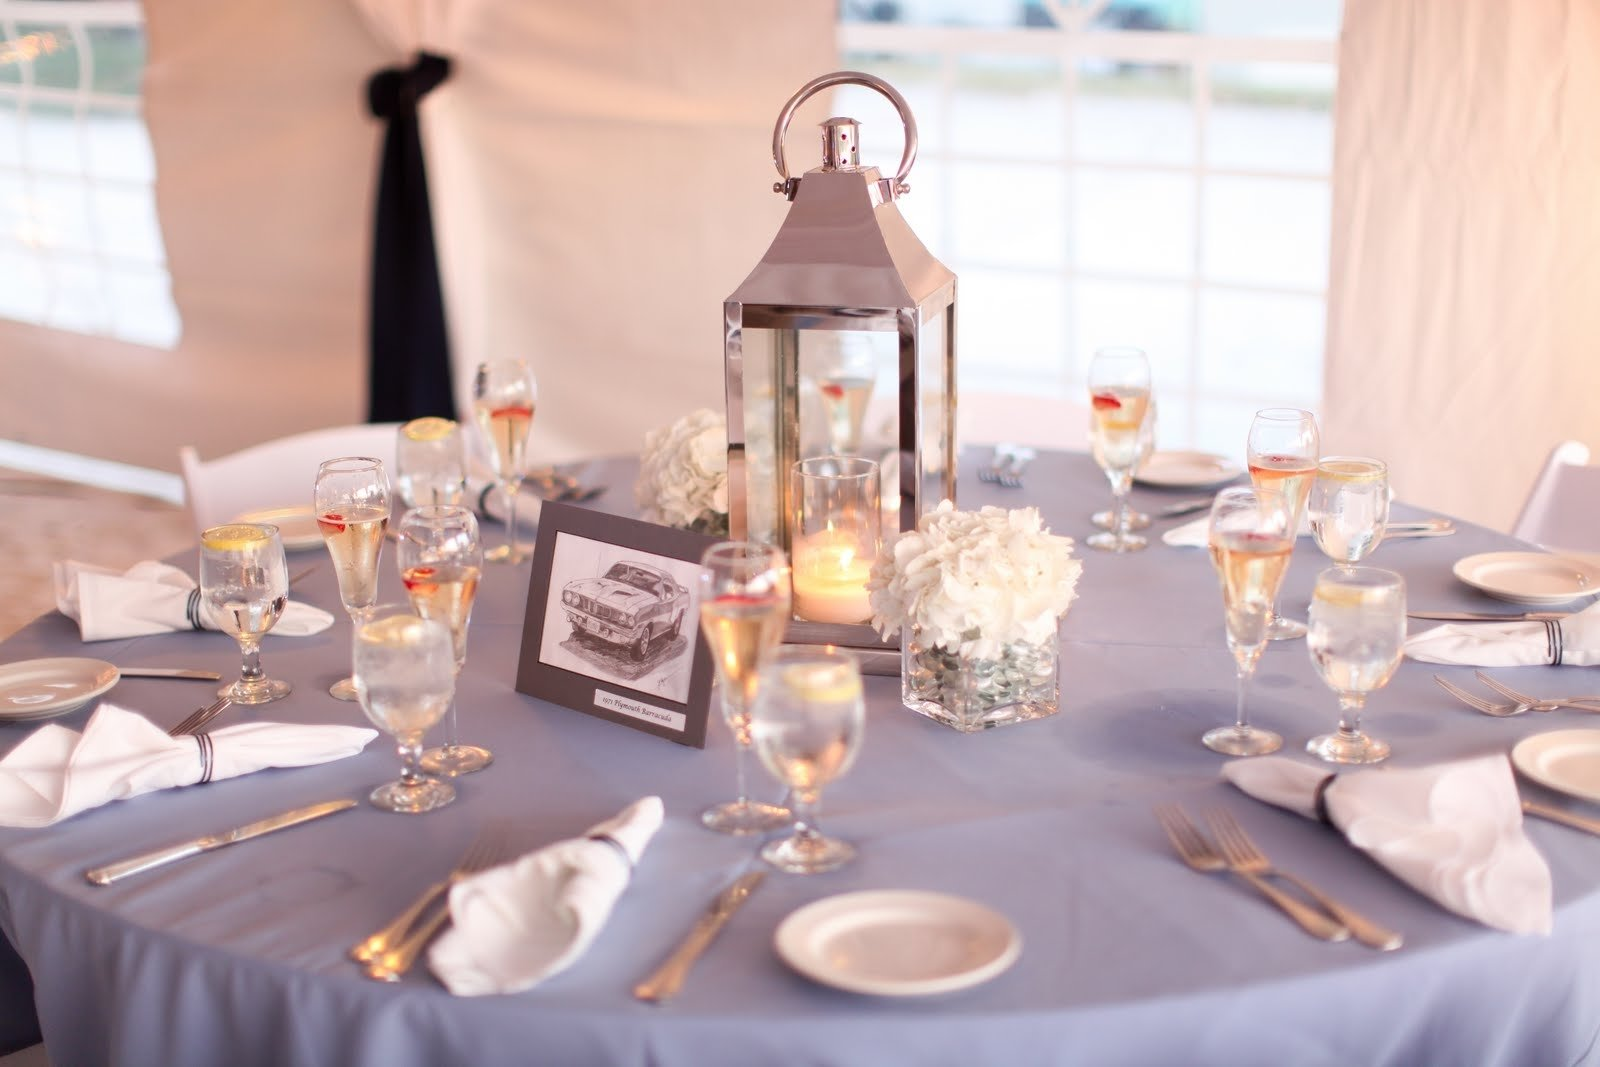 10 Wonderful Cheap Centerpiece Ideas For Wedding fall wedding centerpiece ideas on a budget margusriga baby party 1 2020